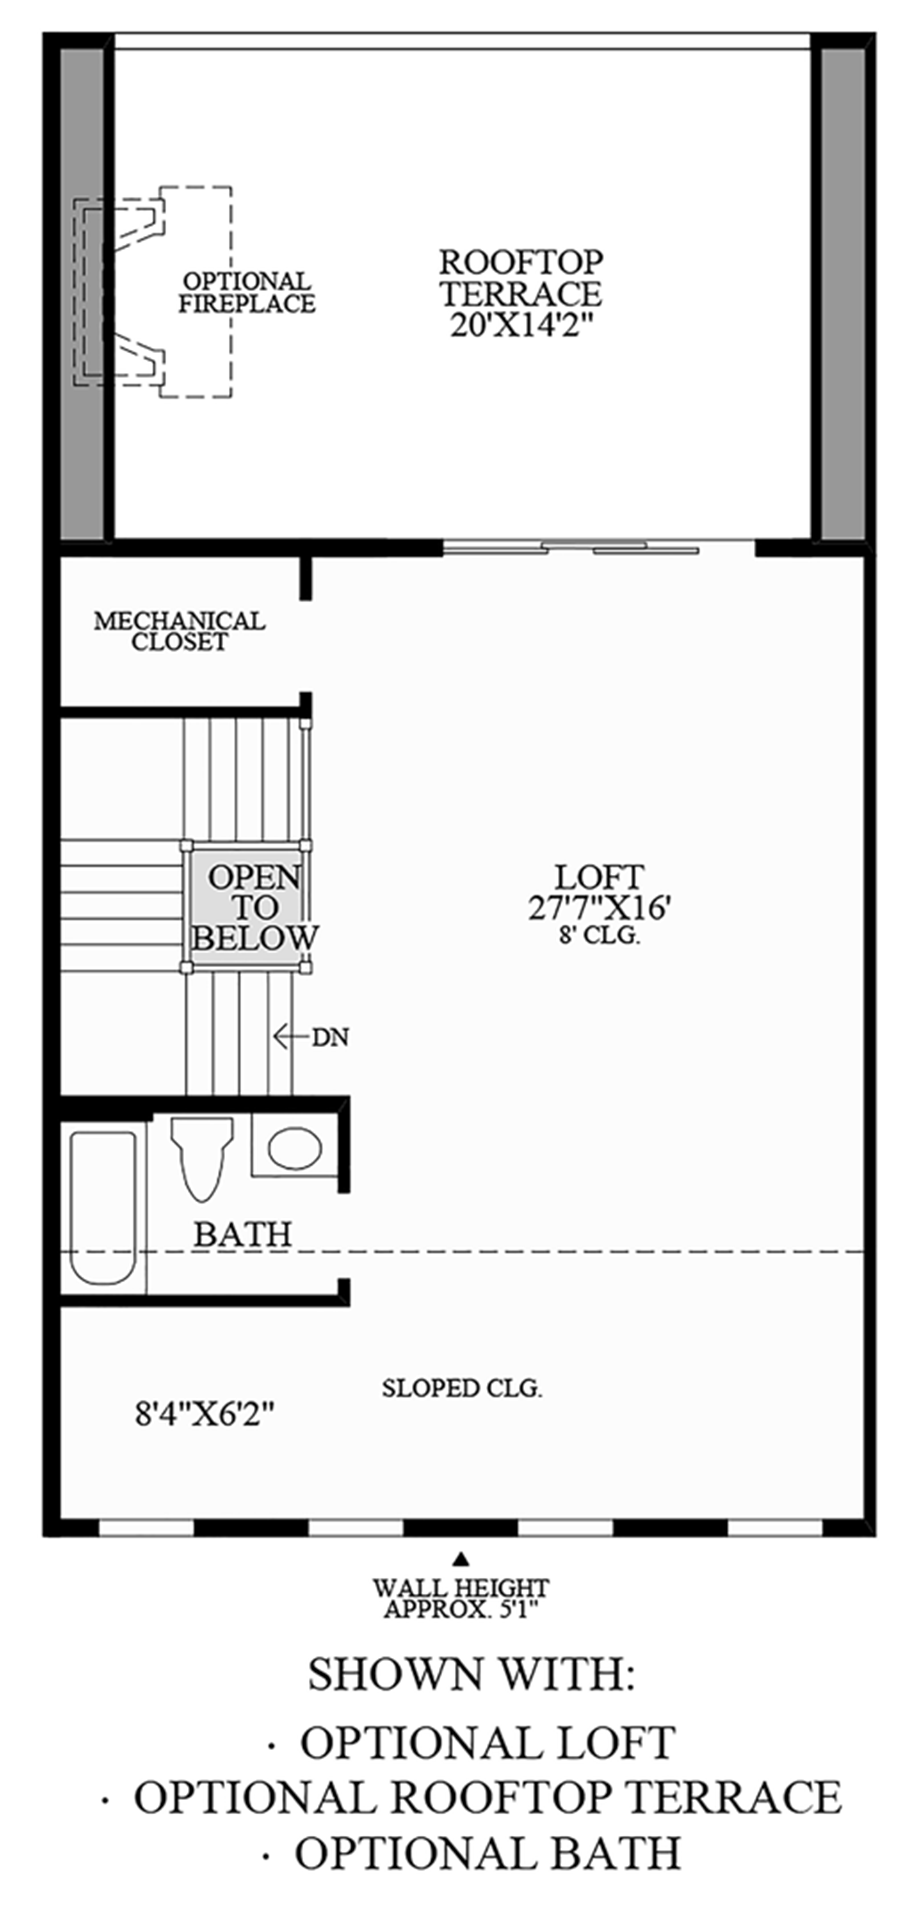 Optional Loft, Optional Rooftop Terrace, and Optional Bath Floor Plan